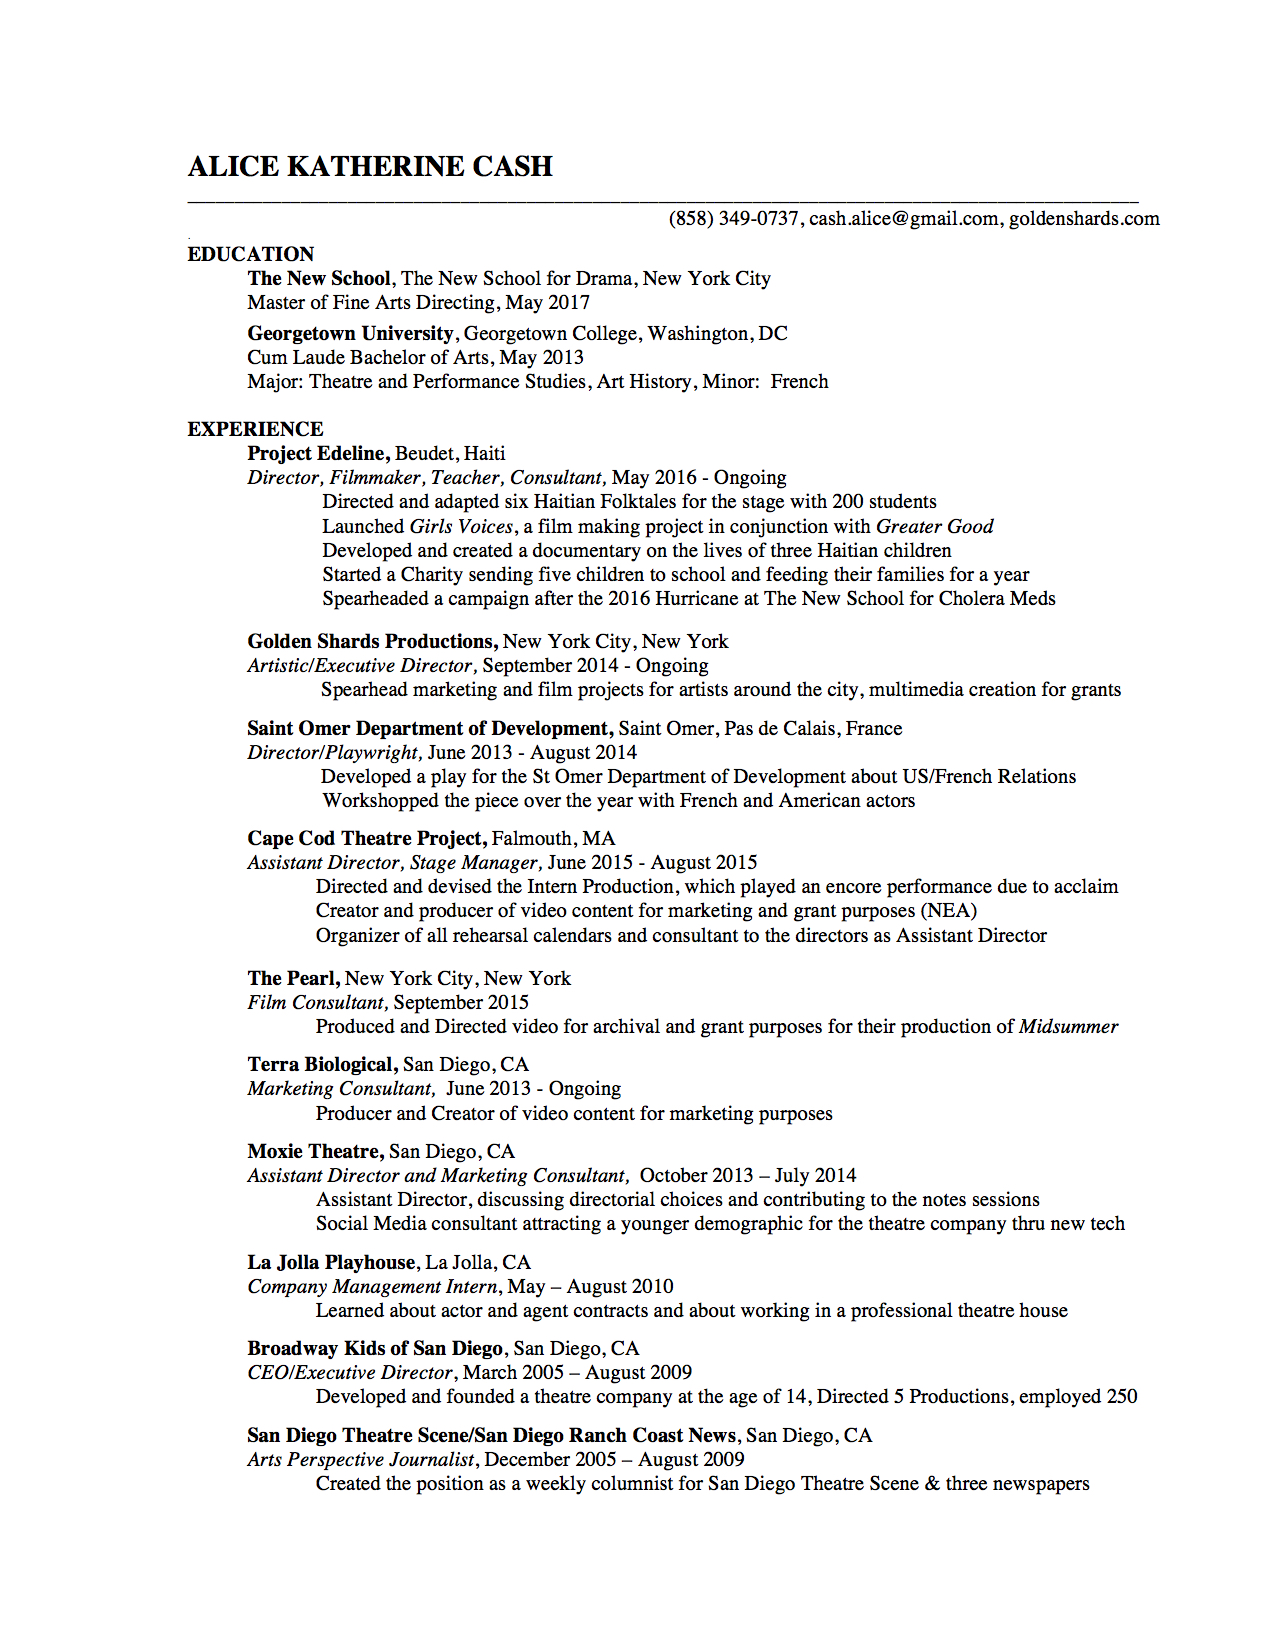 resumes for artists